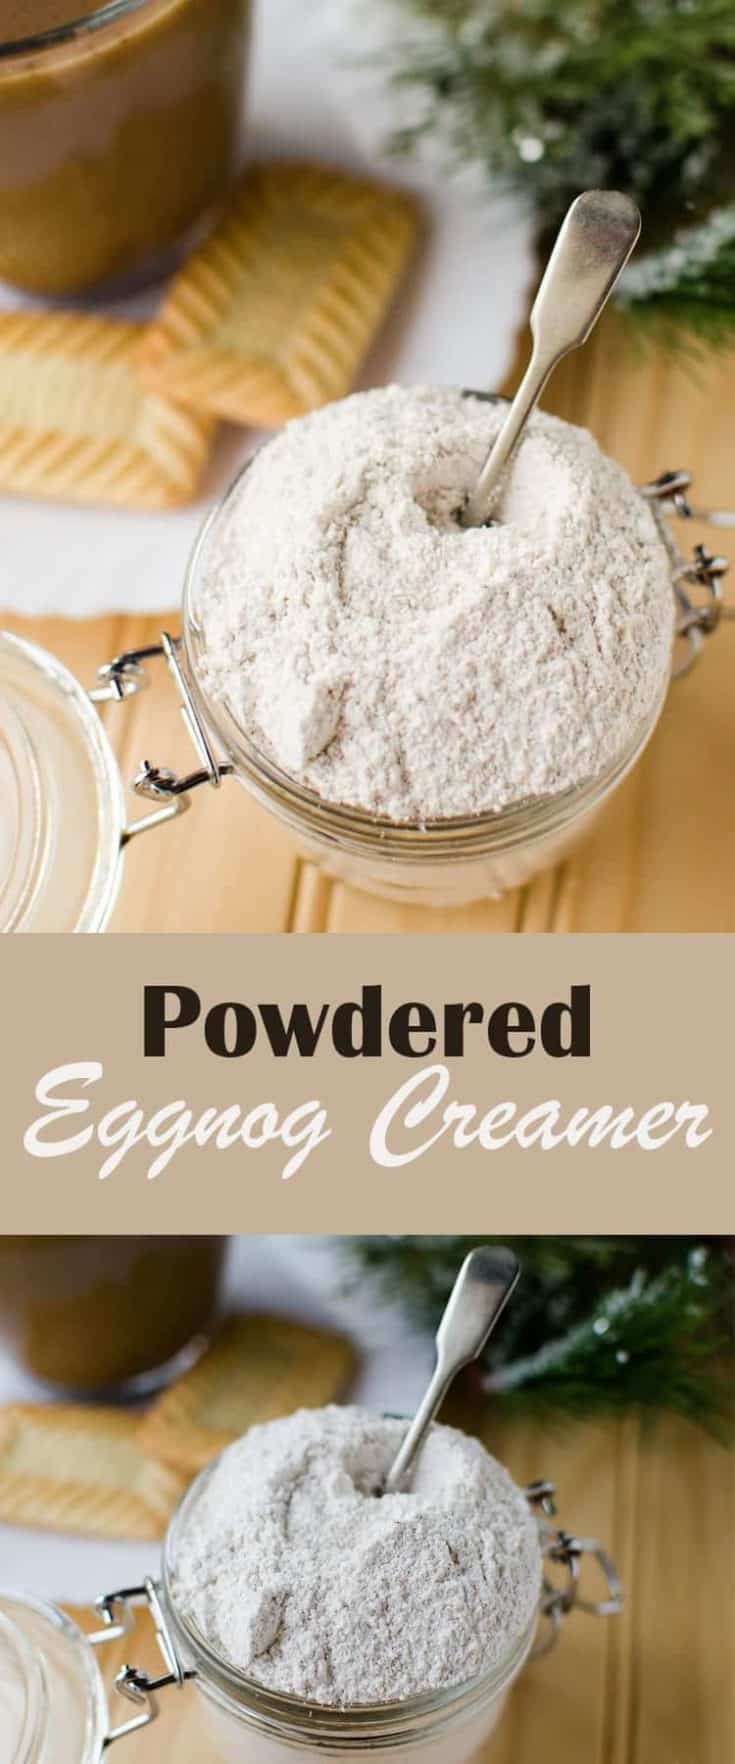 This Powdered Eggnog Creamer takes just a few ingredients and is really easy to make - you can have your own DIY holiday coffee creamer in no time! #eggnogcreamer #coffeecreamer #coffee